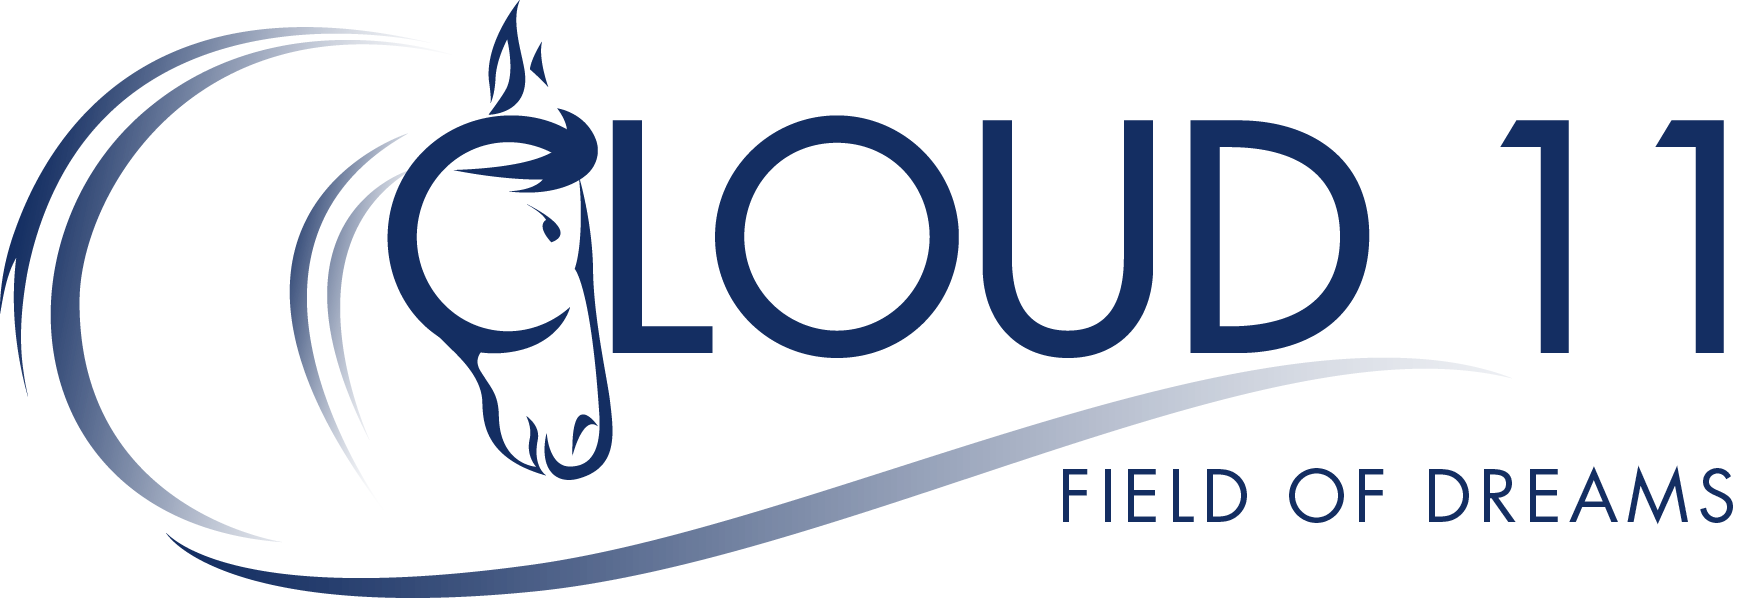 Cloud11 Logo Final 2